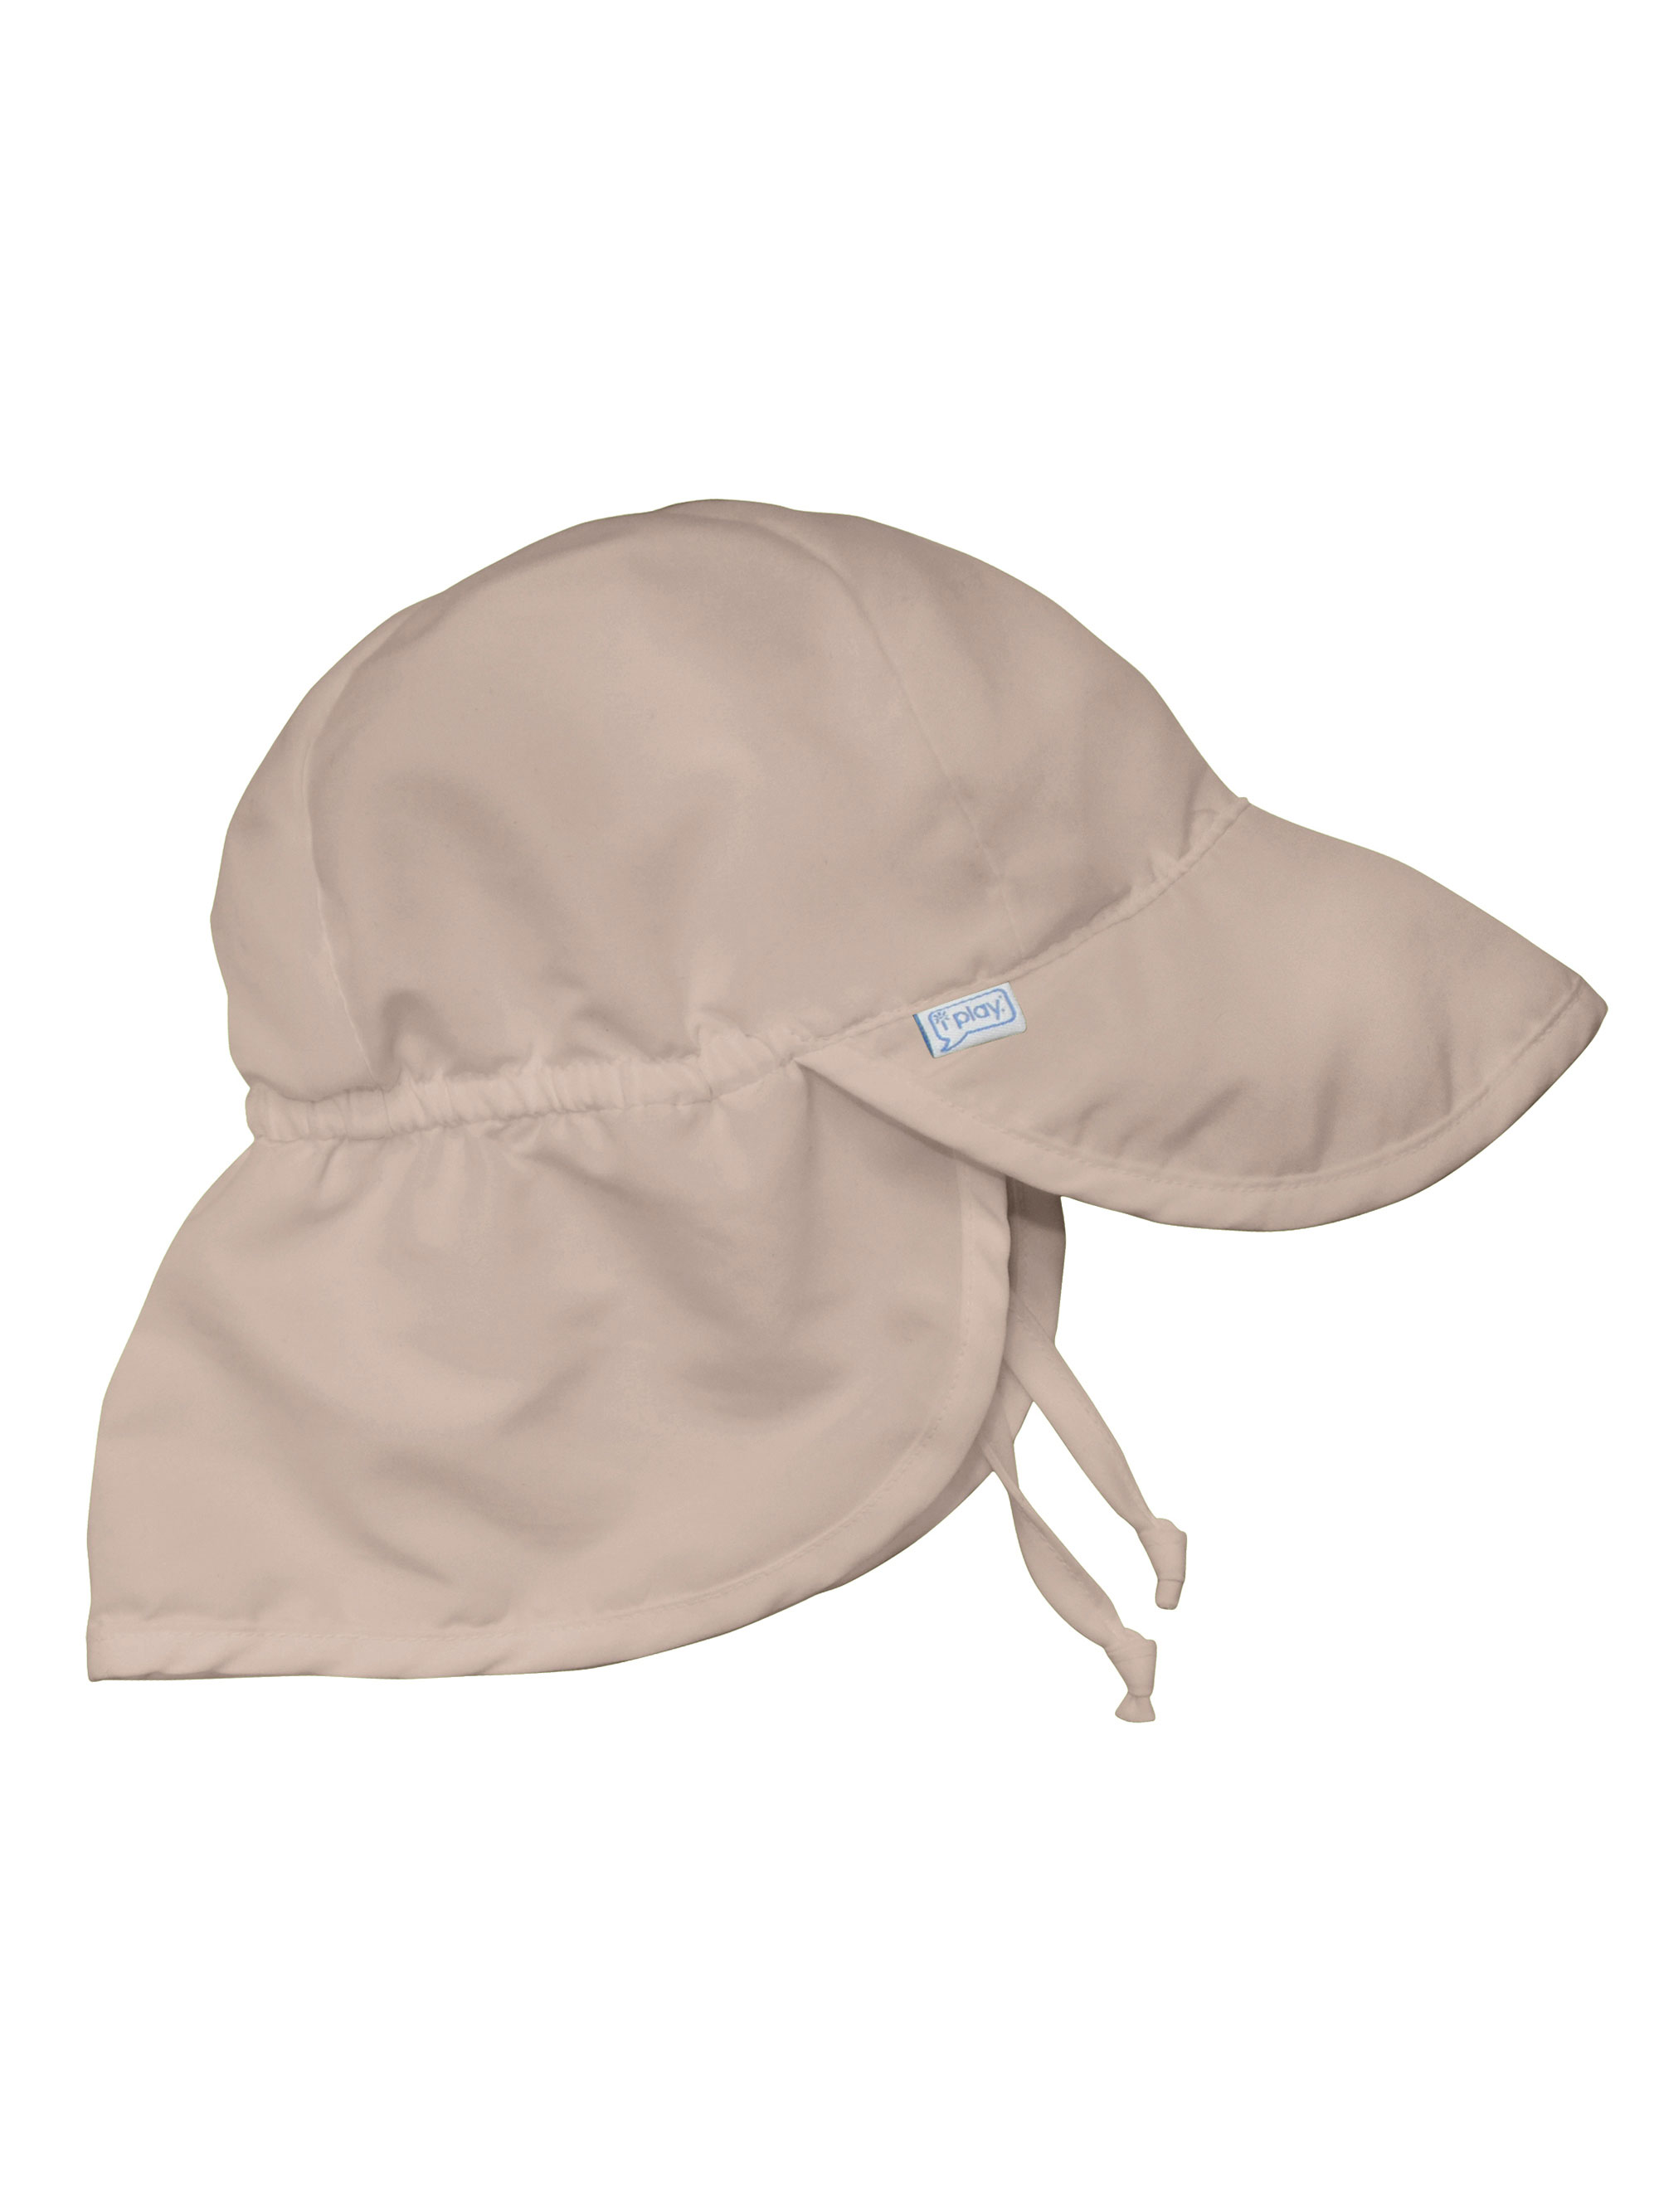 Sun Protection Bonnet with Mesh Lining NIce Caps Baby Girls SPF 50